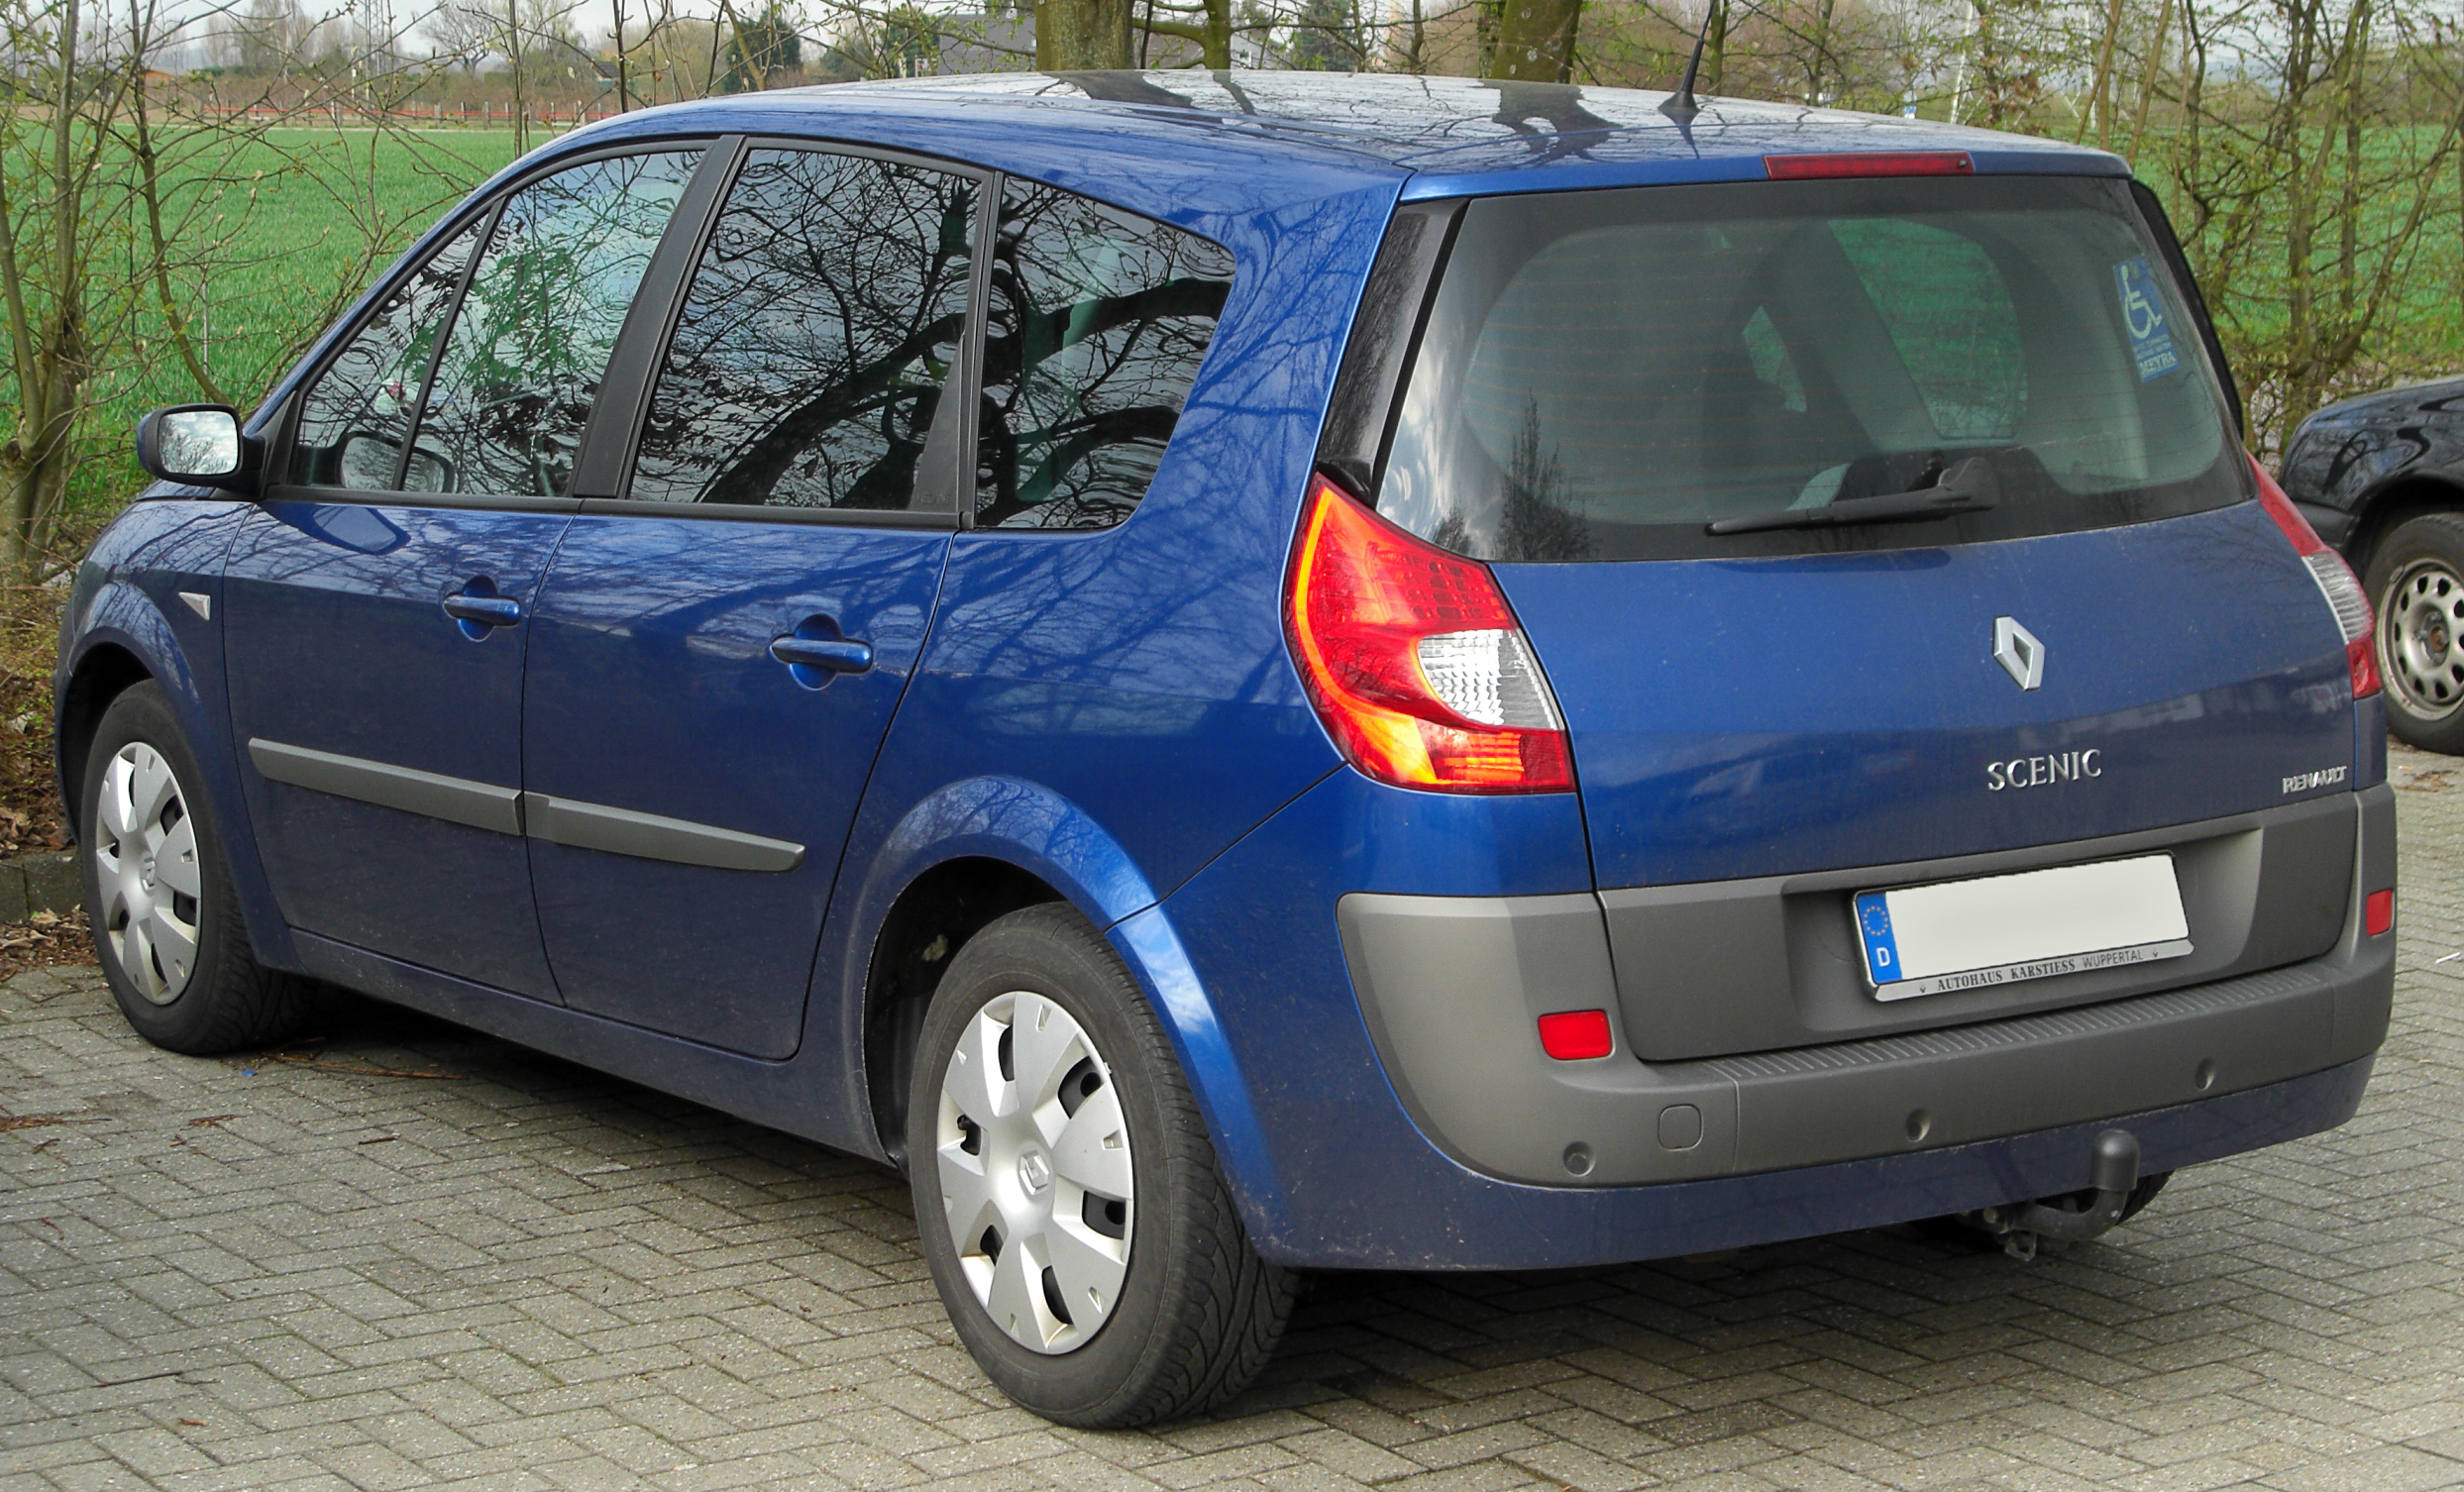 renault scenic ii 2010 images #7